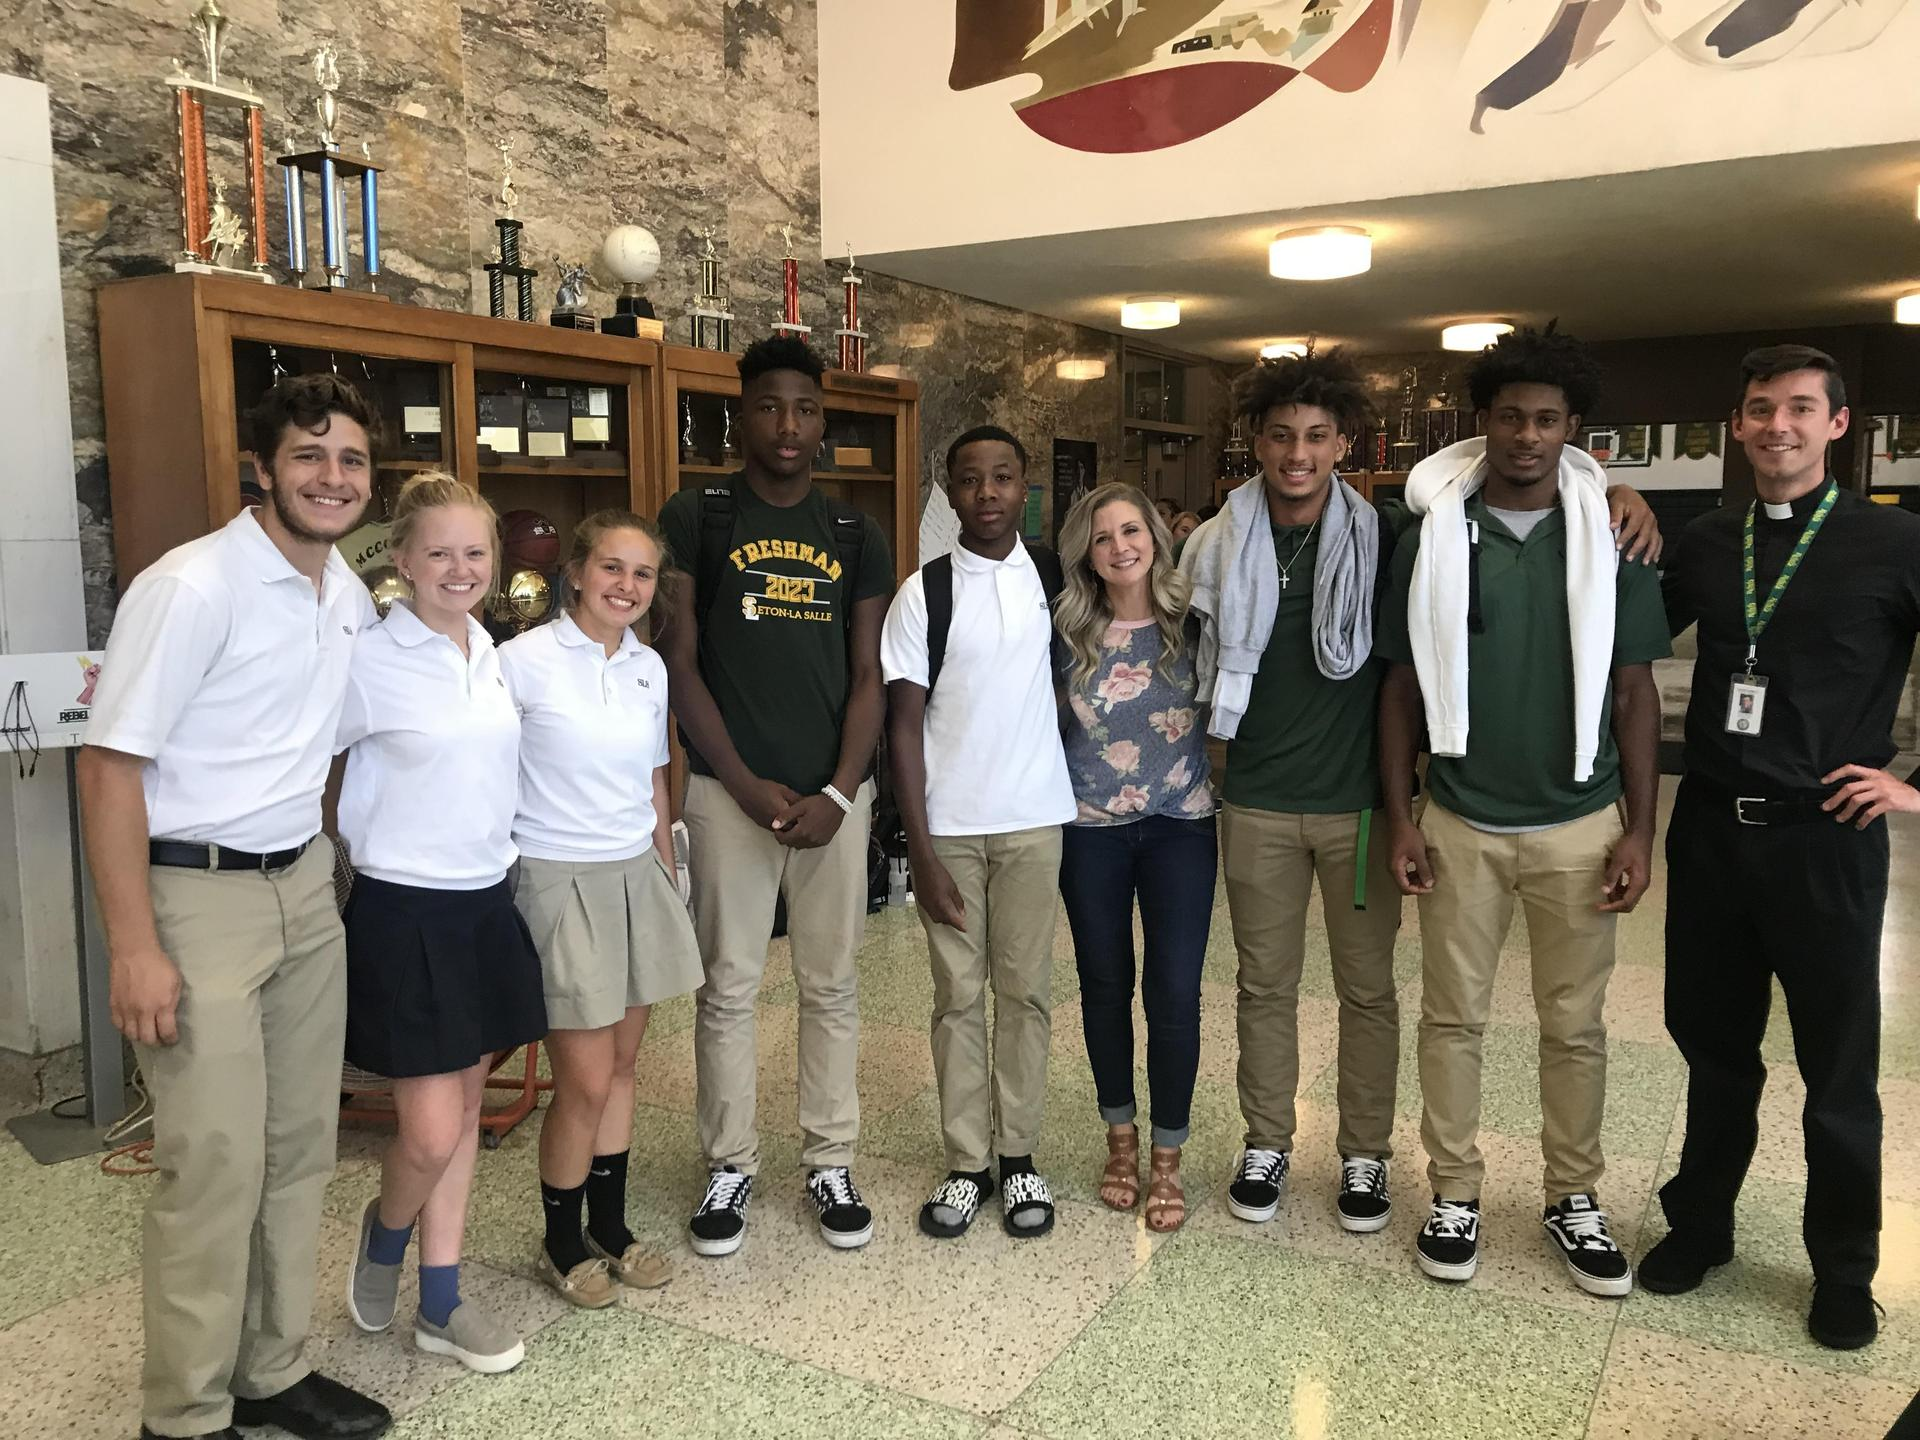 Students and Fr. Thomas Gramc with Sarah Swafford, renowned Catholic speaker and author